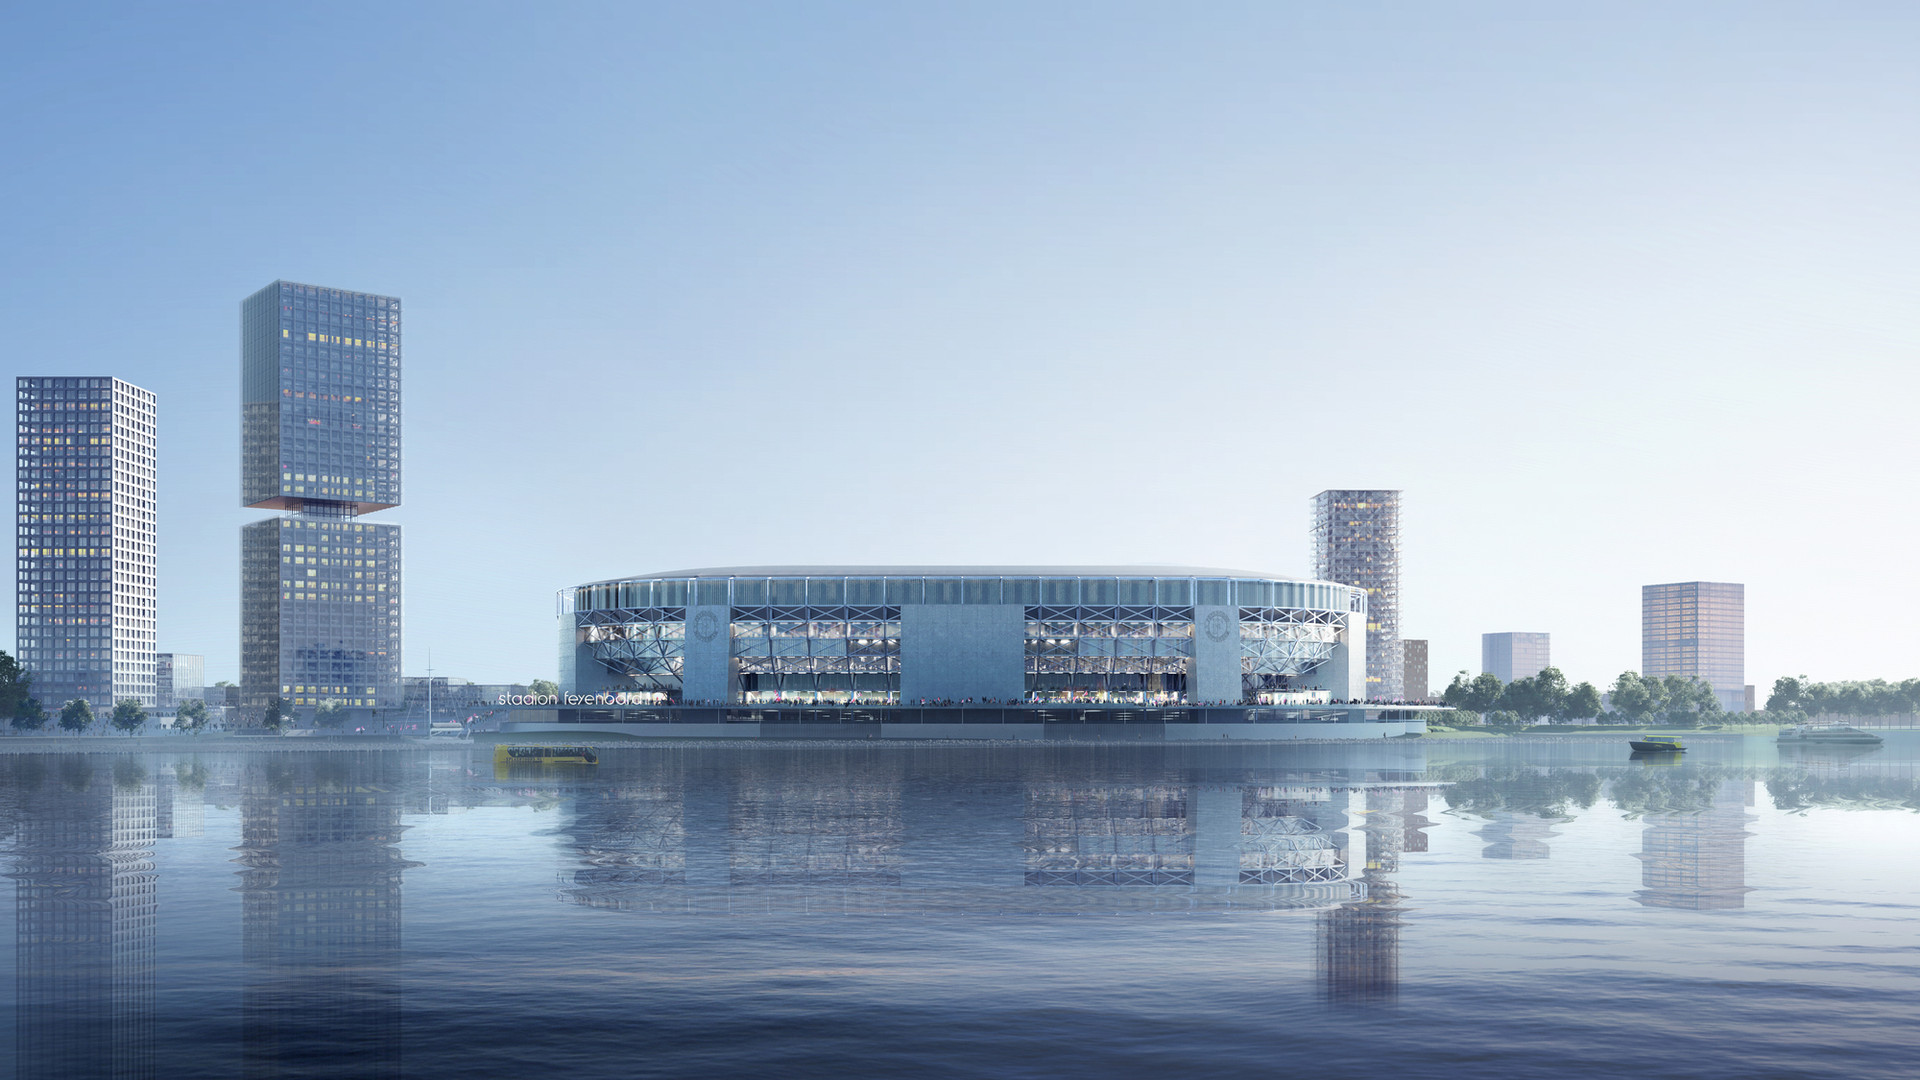 Feyenoord City Stadium